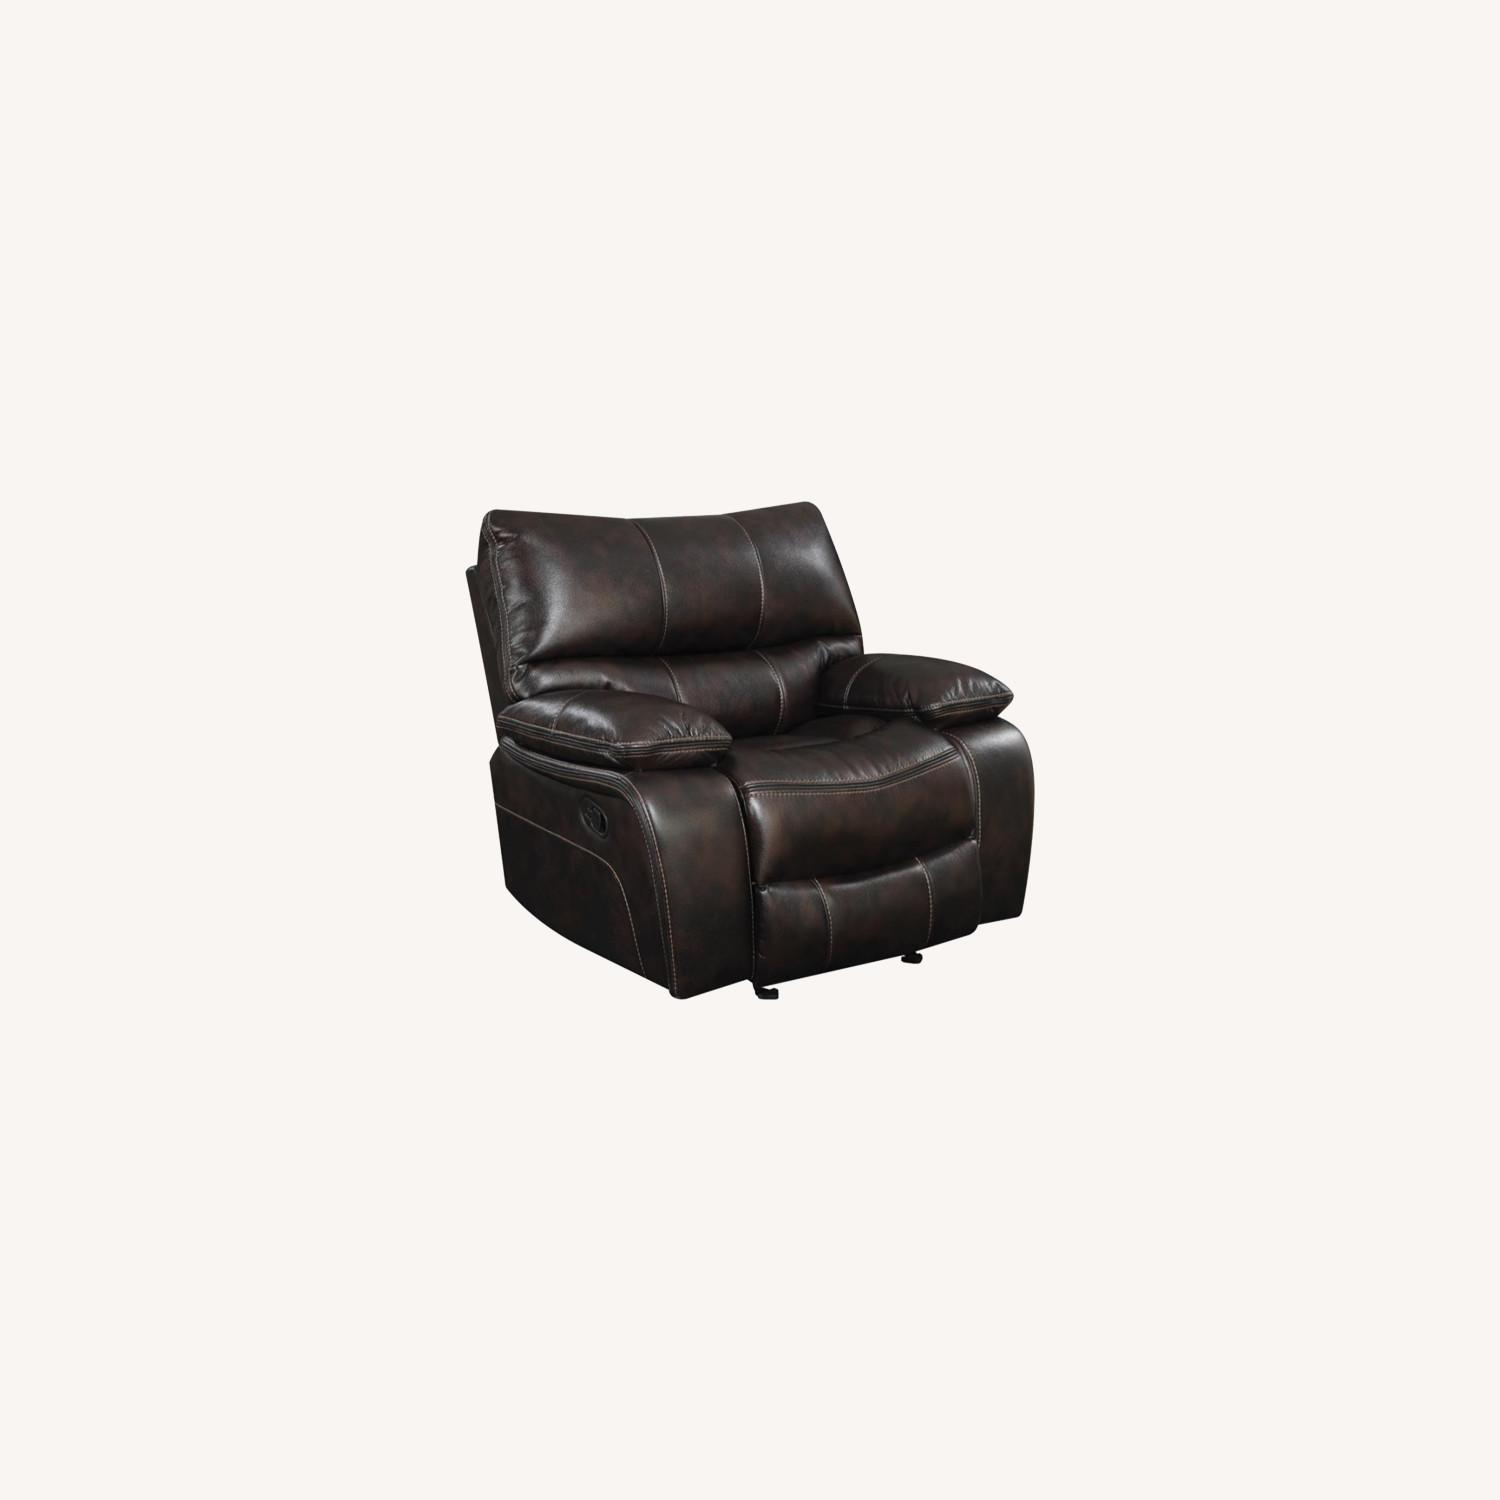 Glider Recliner W/ Scooped Seating In Dark Brown - image-8